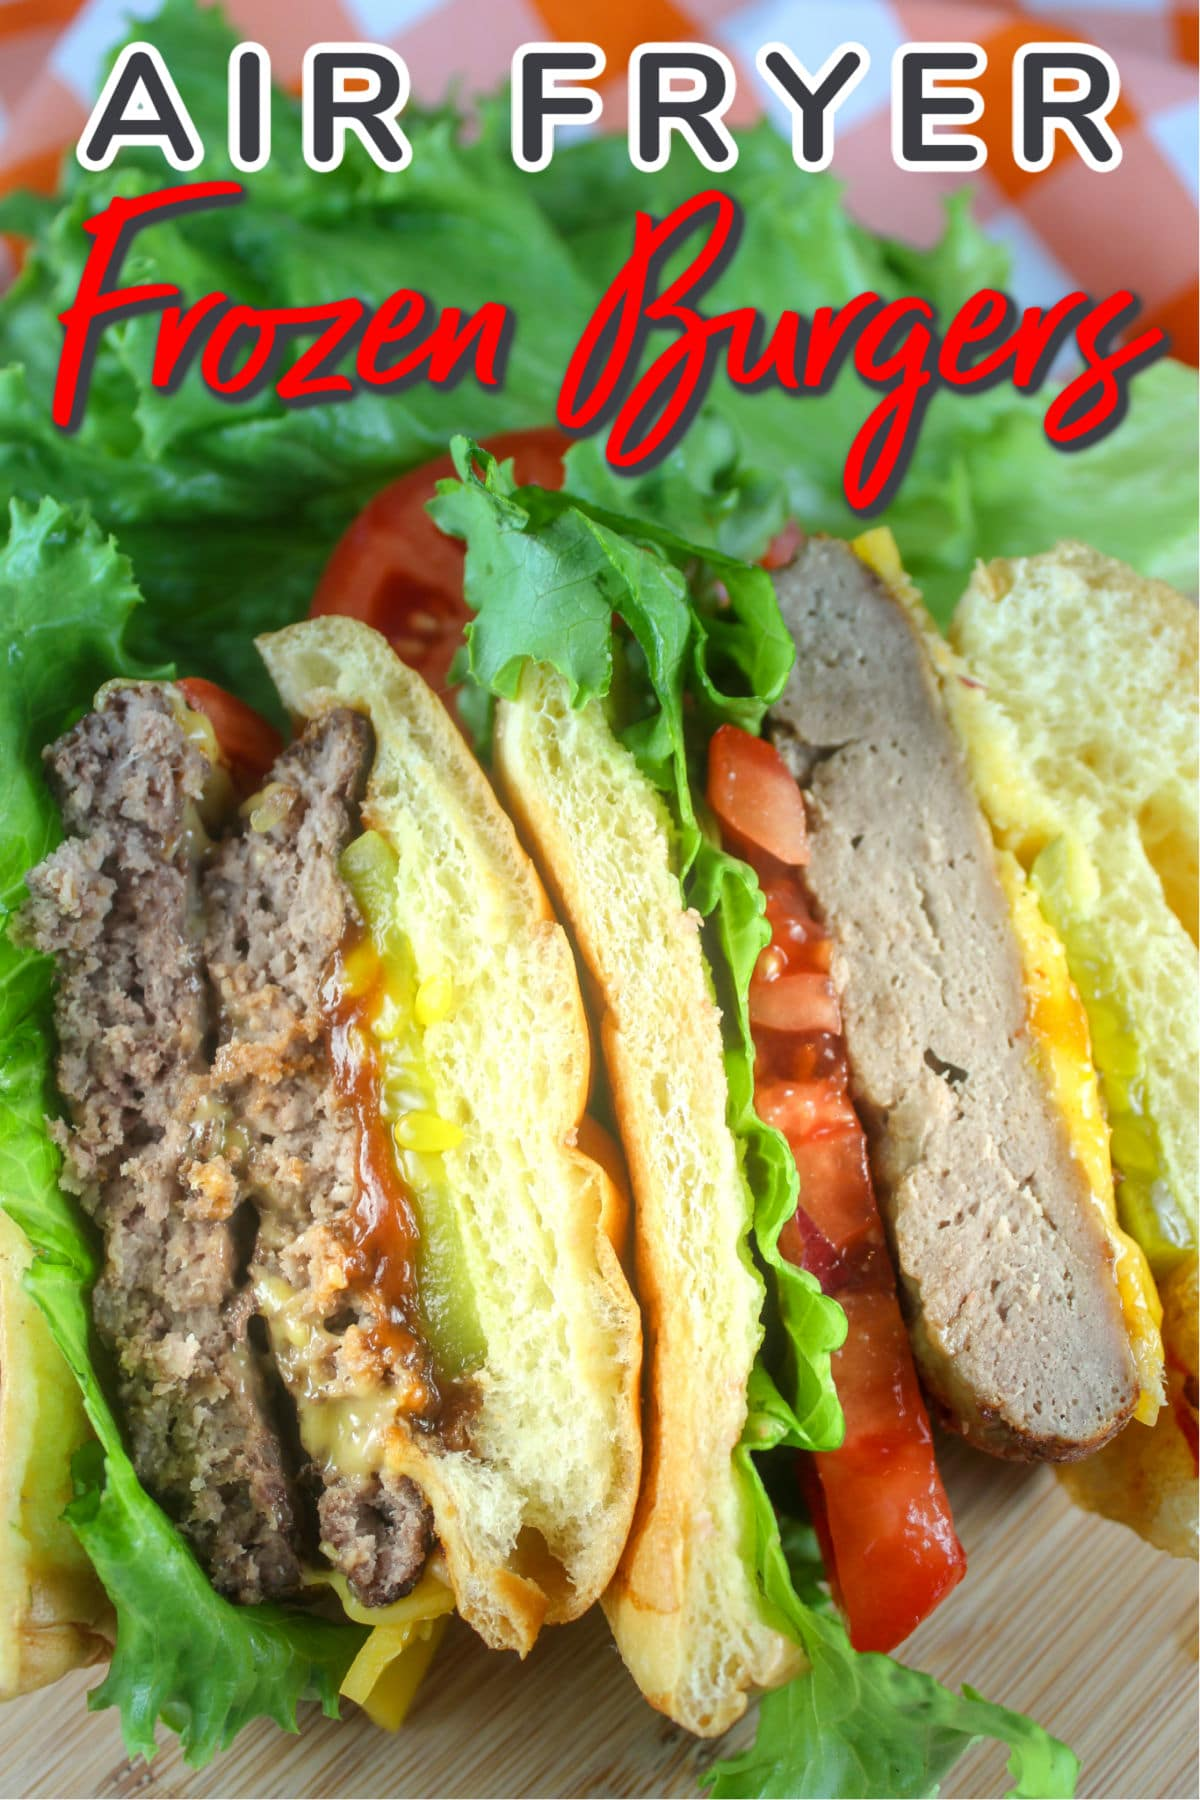 Dinner just got easier - making frozen hamburgers in your air fryer means burgers in 15 minutes with no work! Freezer to table in no time! via @foodhussy